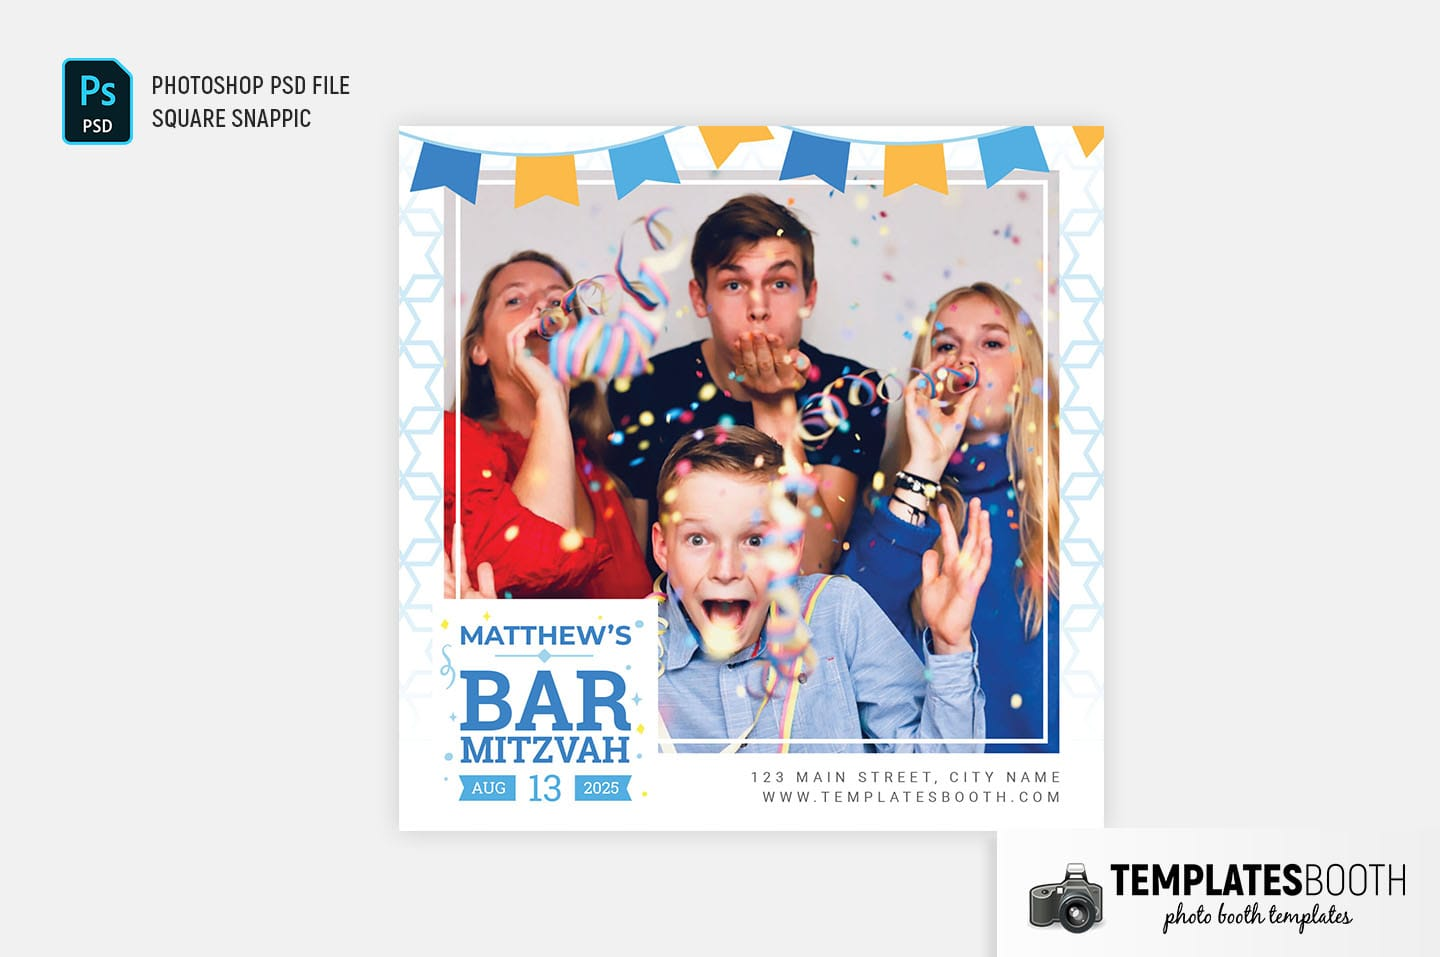 Bar Mitzvah Photo Booth Template (Snappic)